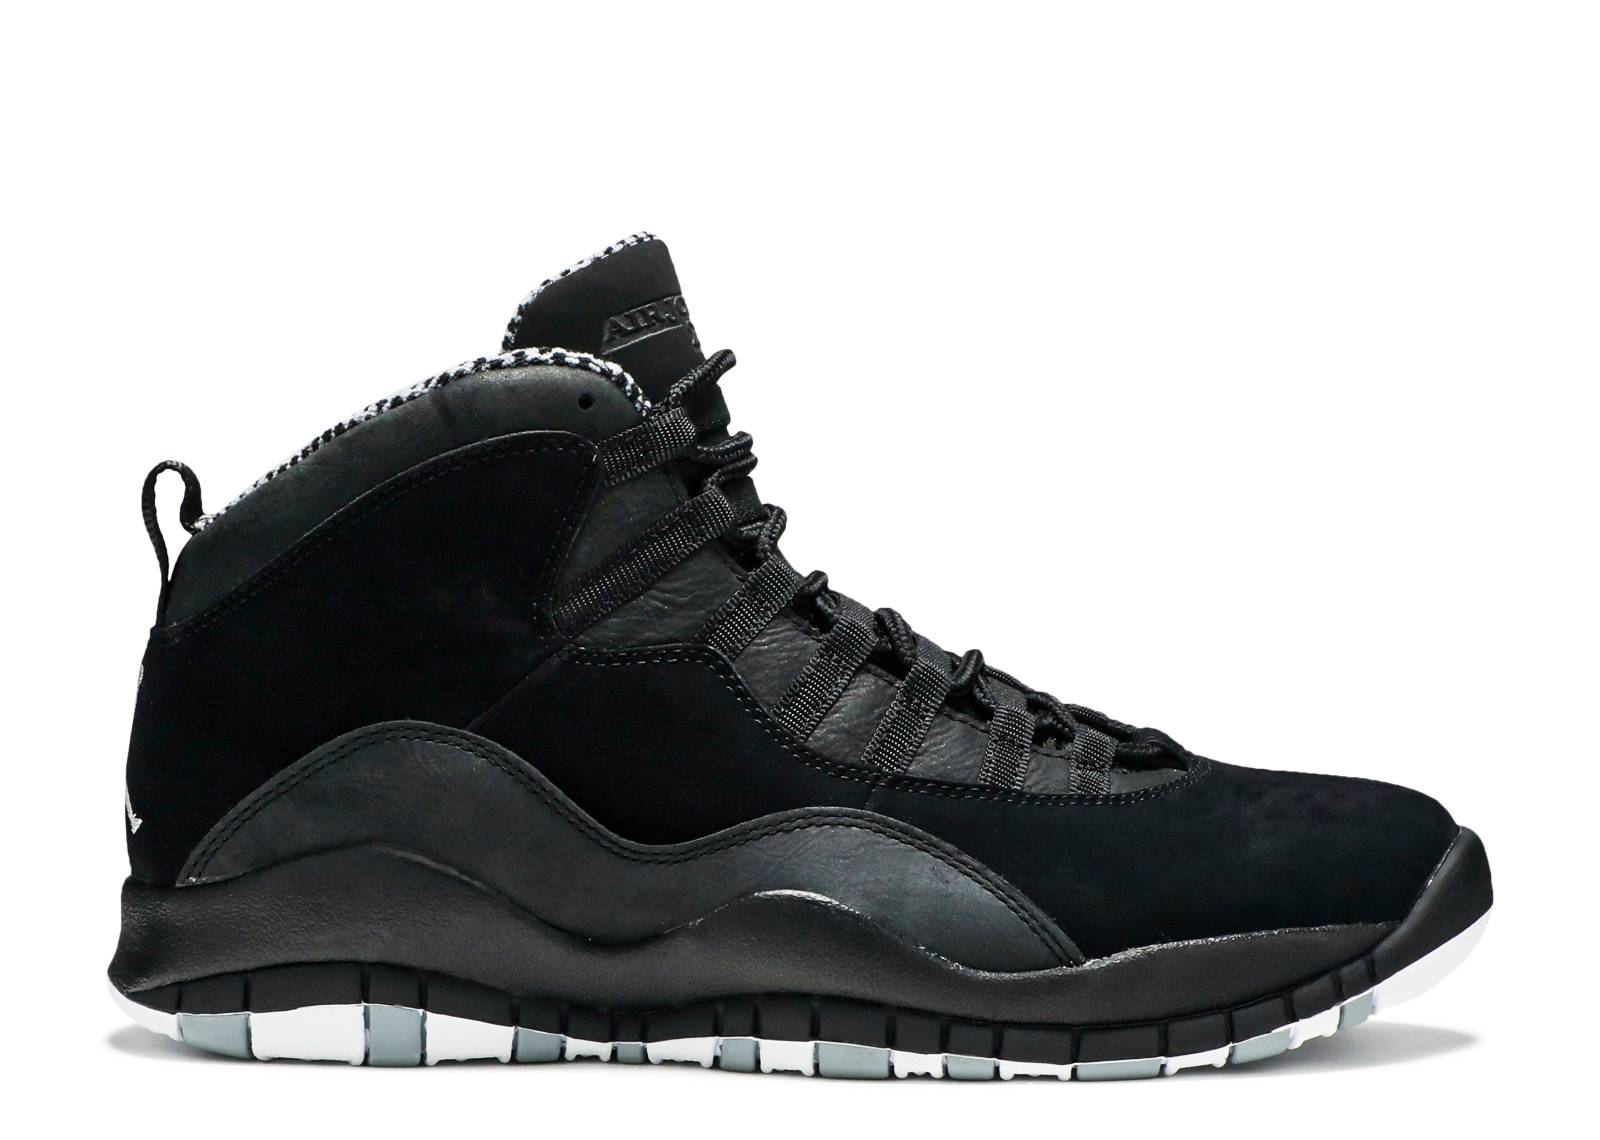 black and white jordan retro 10